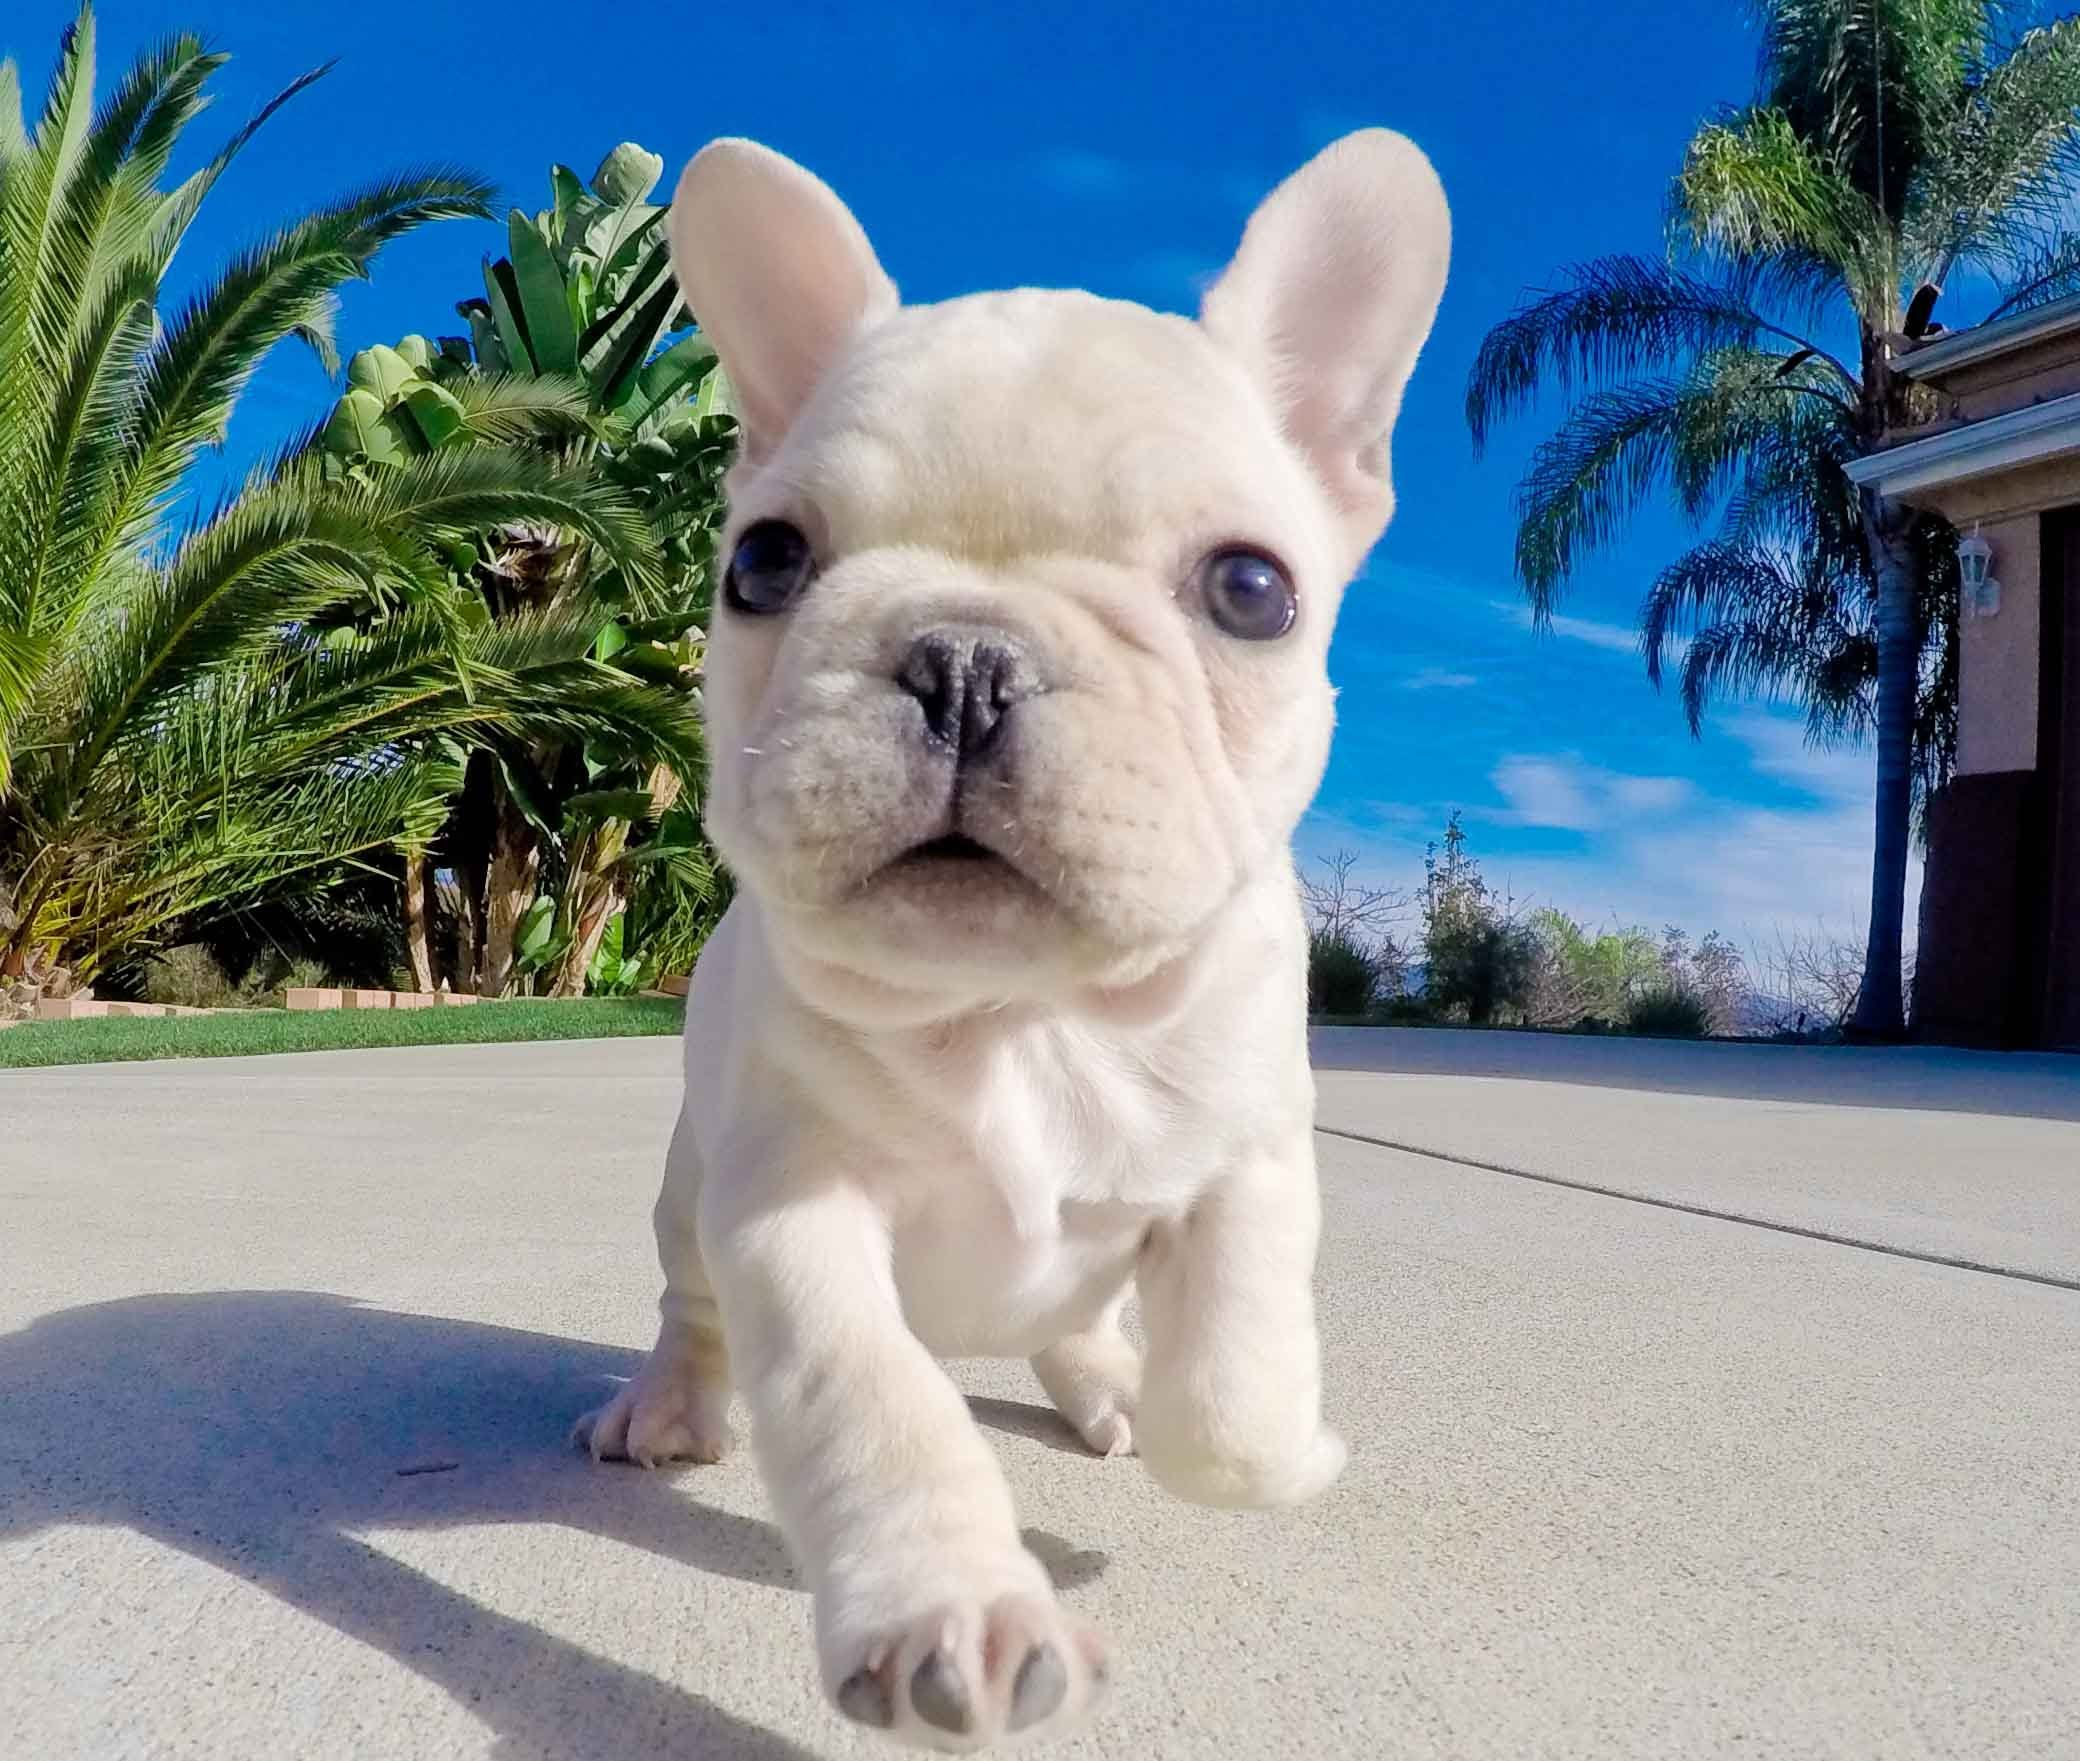 French Bulldog Puppies For Sale Online Http Ift Tt 2fpckrw French Bulldog Puppies Bulldog Puppies White French Bulldog Puppies